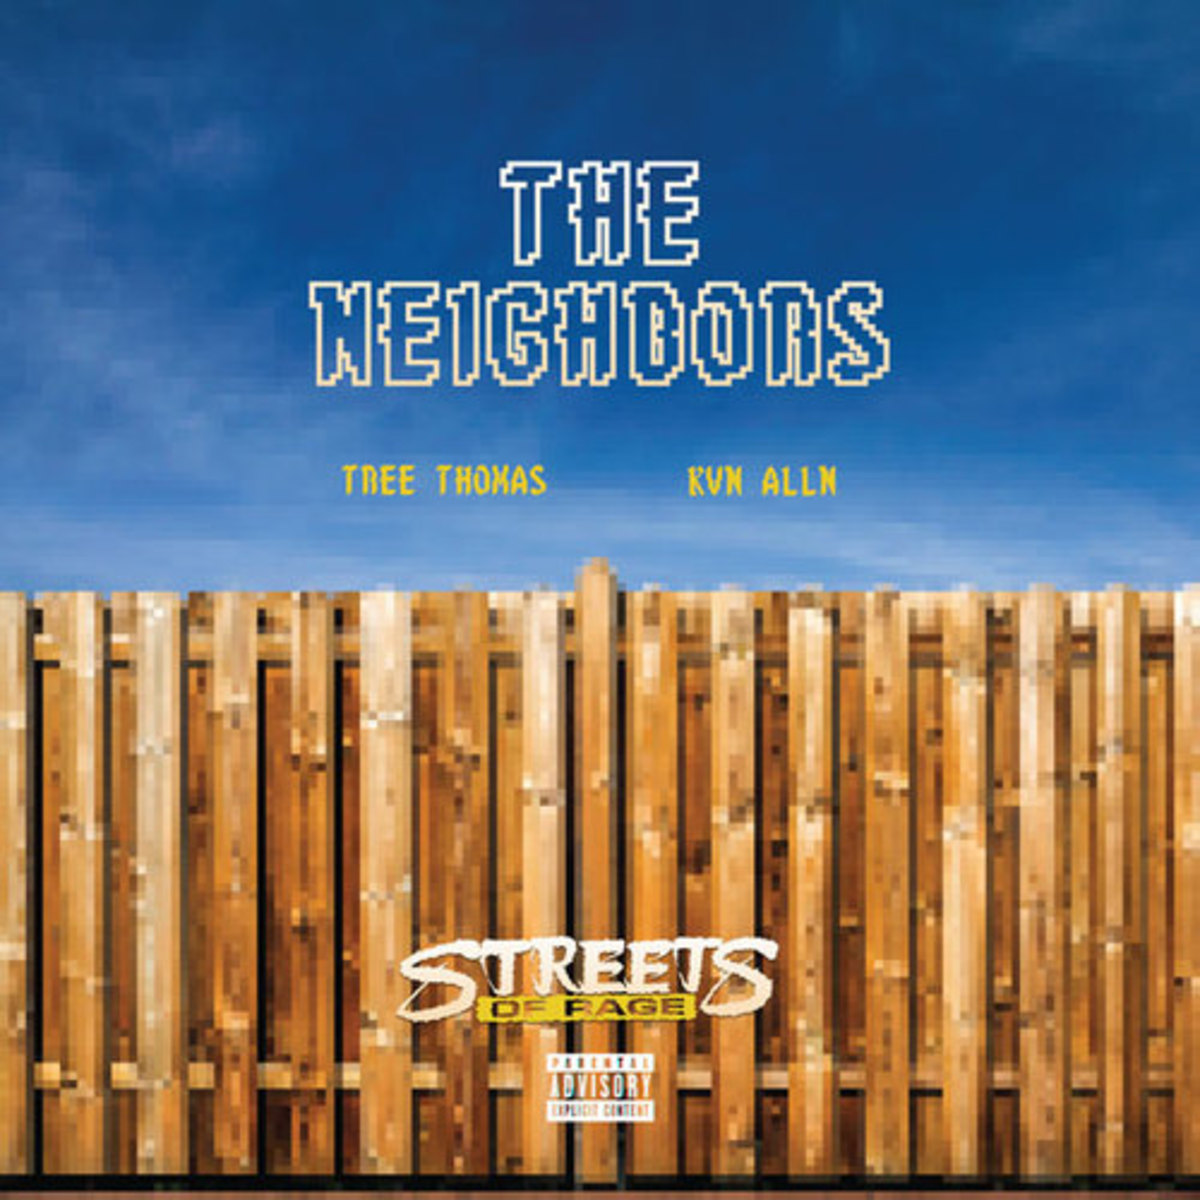 tree-thomas-the-neighbors2.jpg